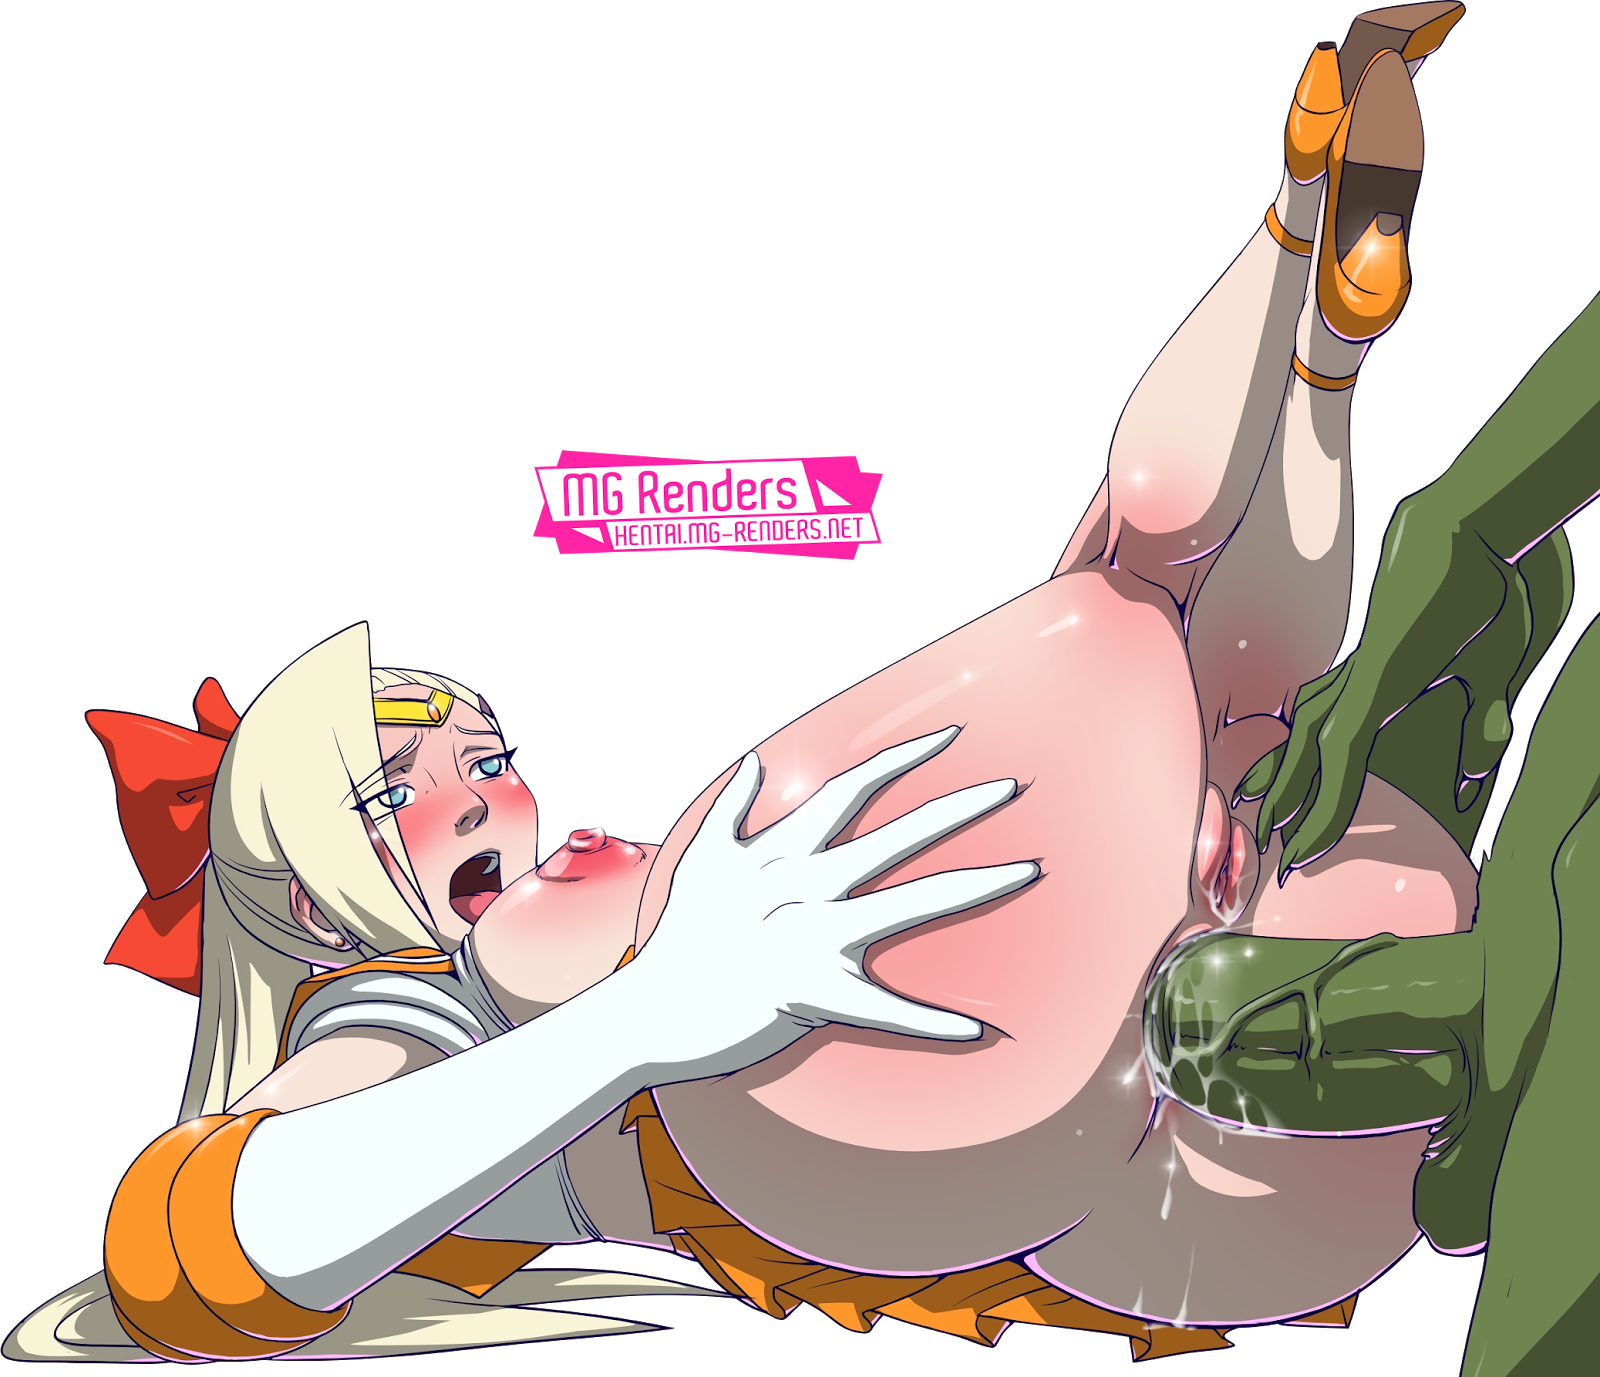 Tags: Anime, Render,  Aino Minako (Sailor Venus),  Anal Sex,  Anus,  Ass Grab,  High heels,  Naruto,  Nipples,  No bra,  Sailor Moon,  Skirt,  Vagina,  Yamanaka Ino, PNG, Image, Picture